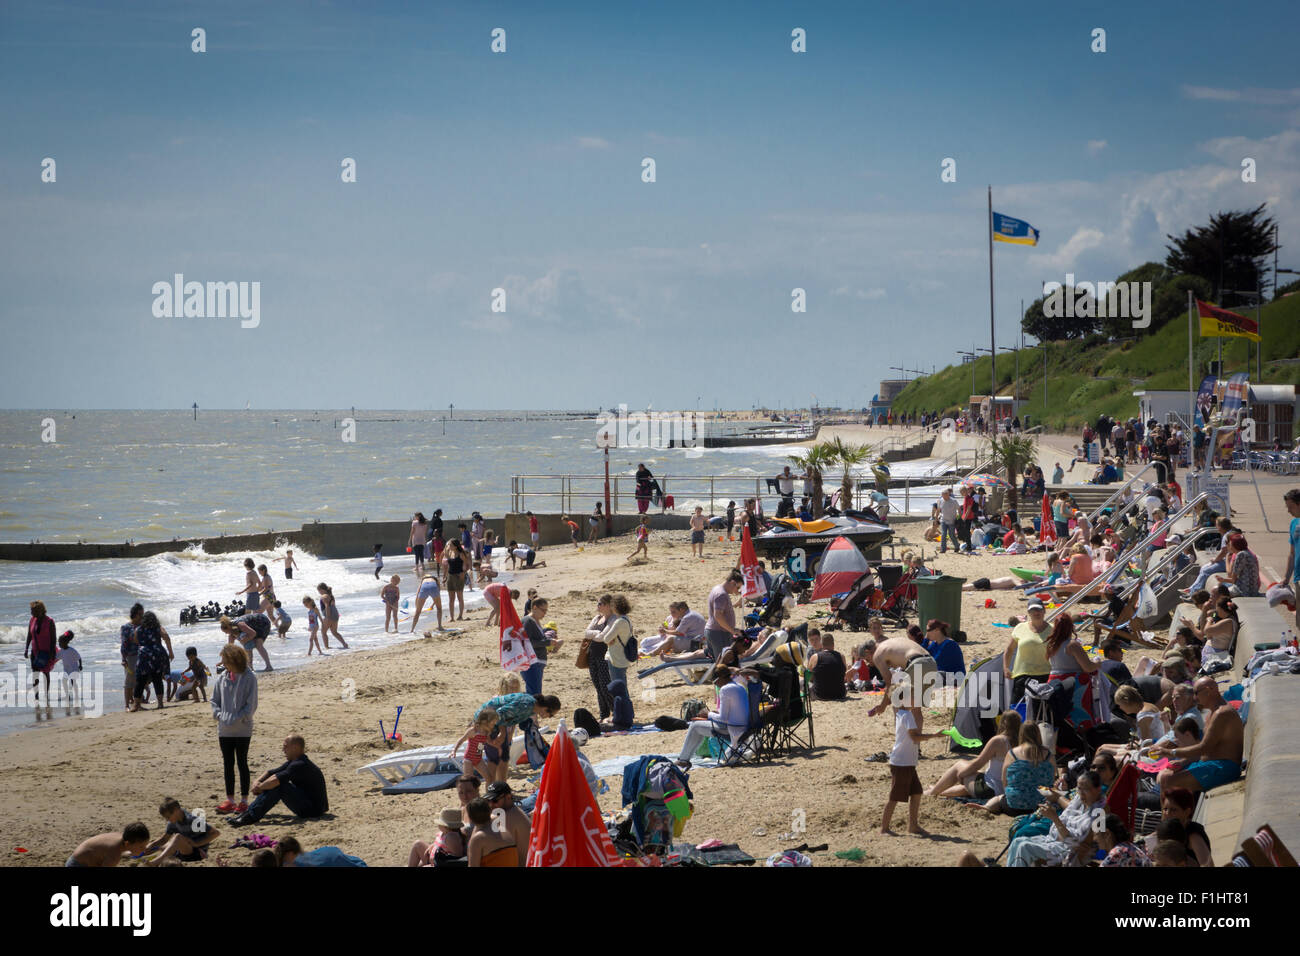 A crowded beach at Clacton-on-Sea, Essex, UK - Stock Image